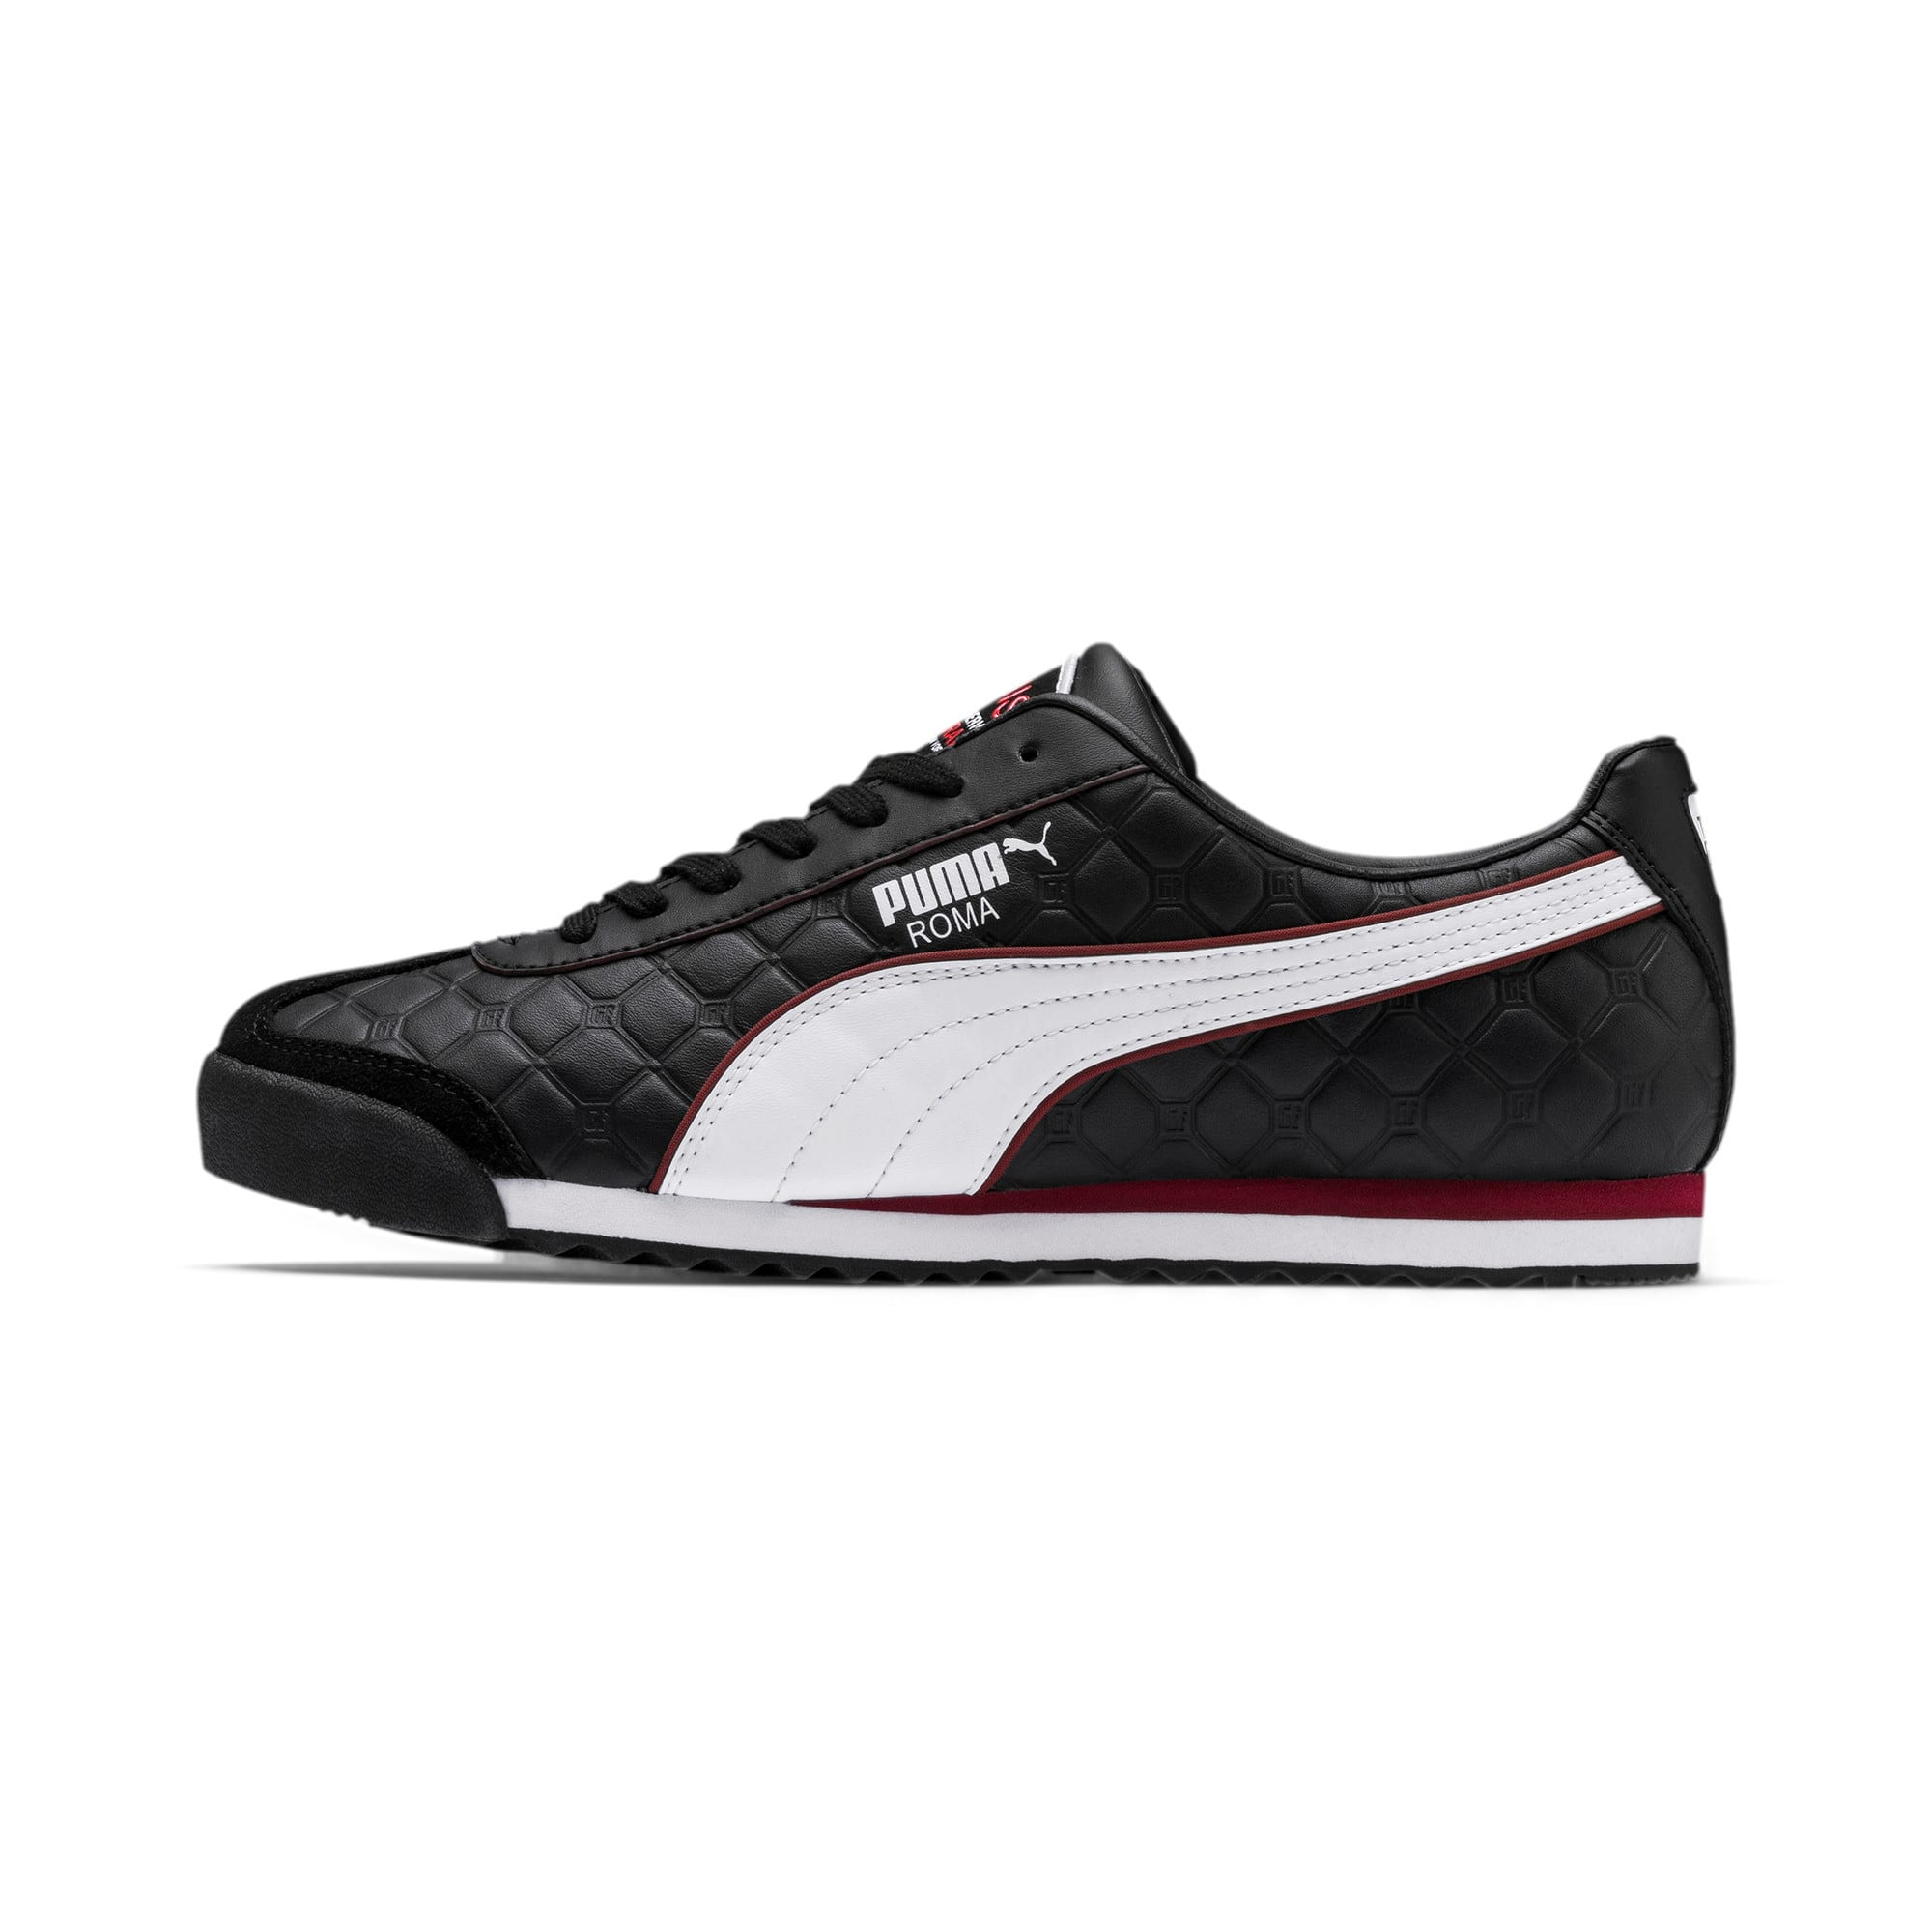 Thumbnail 1 of Roma x The Godfather LOUIS Herren Sneaker, Puma Black-Fired Brick, medium